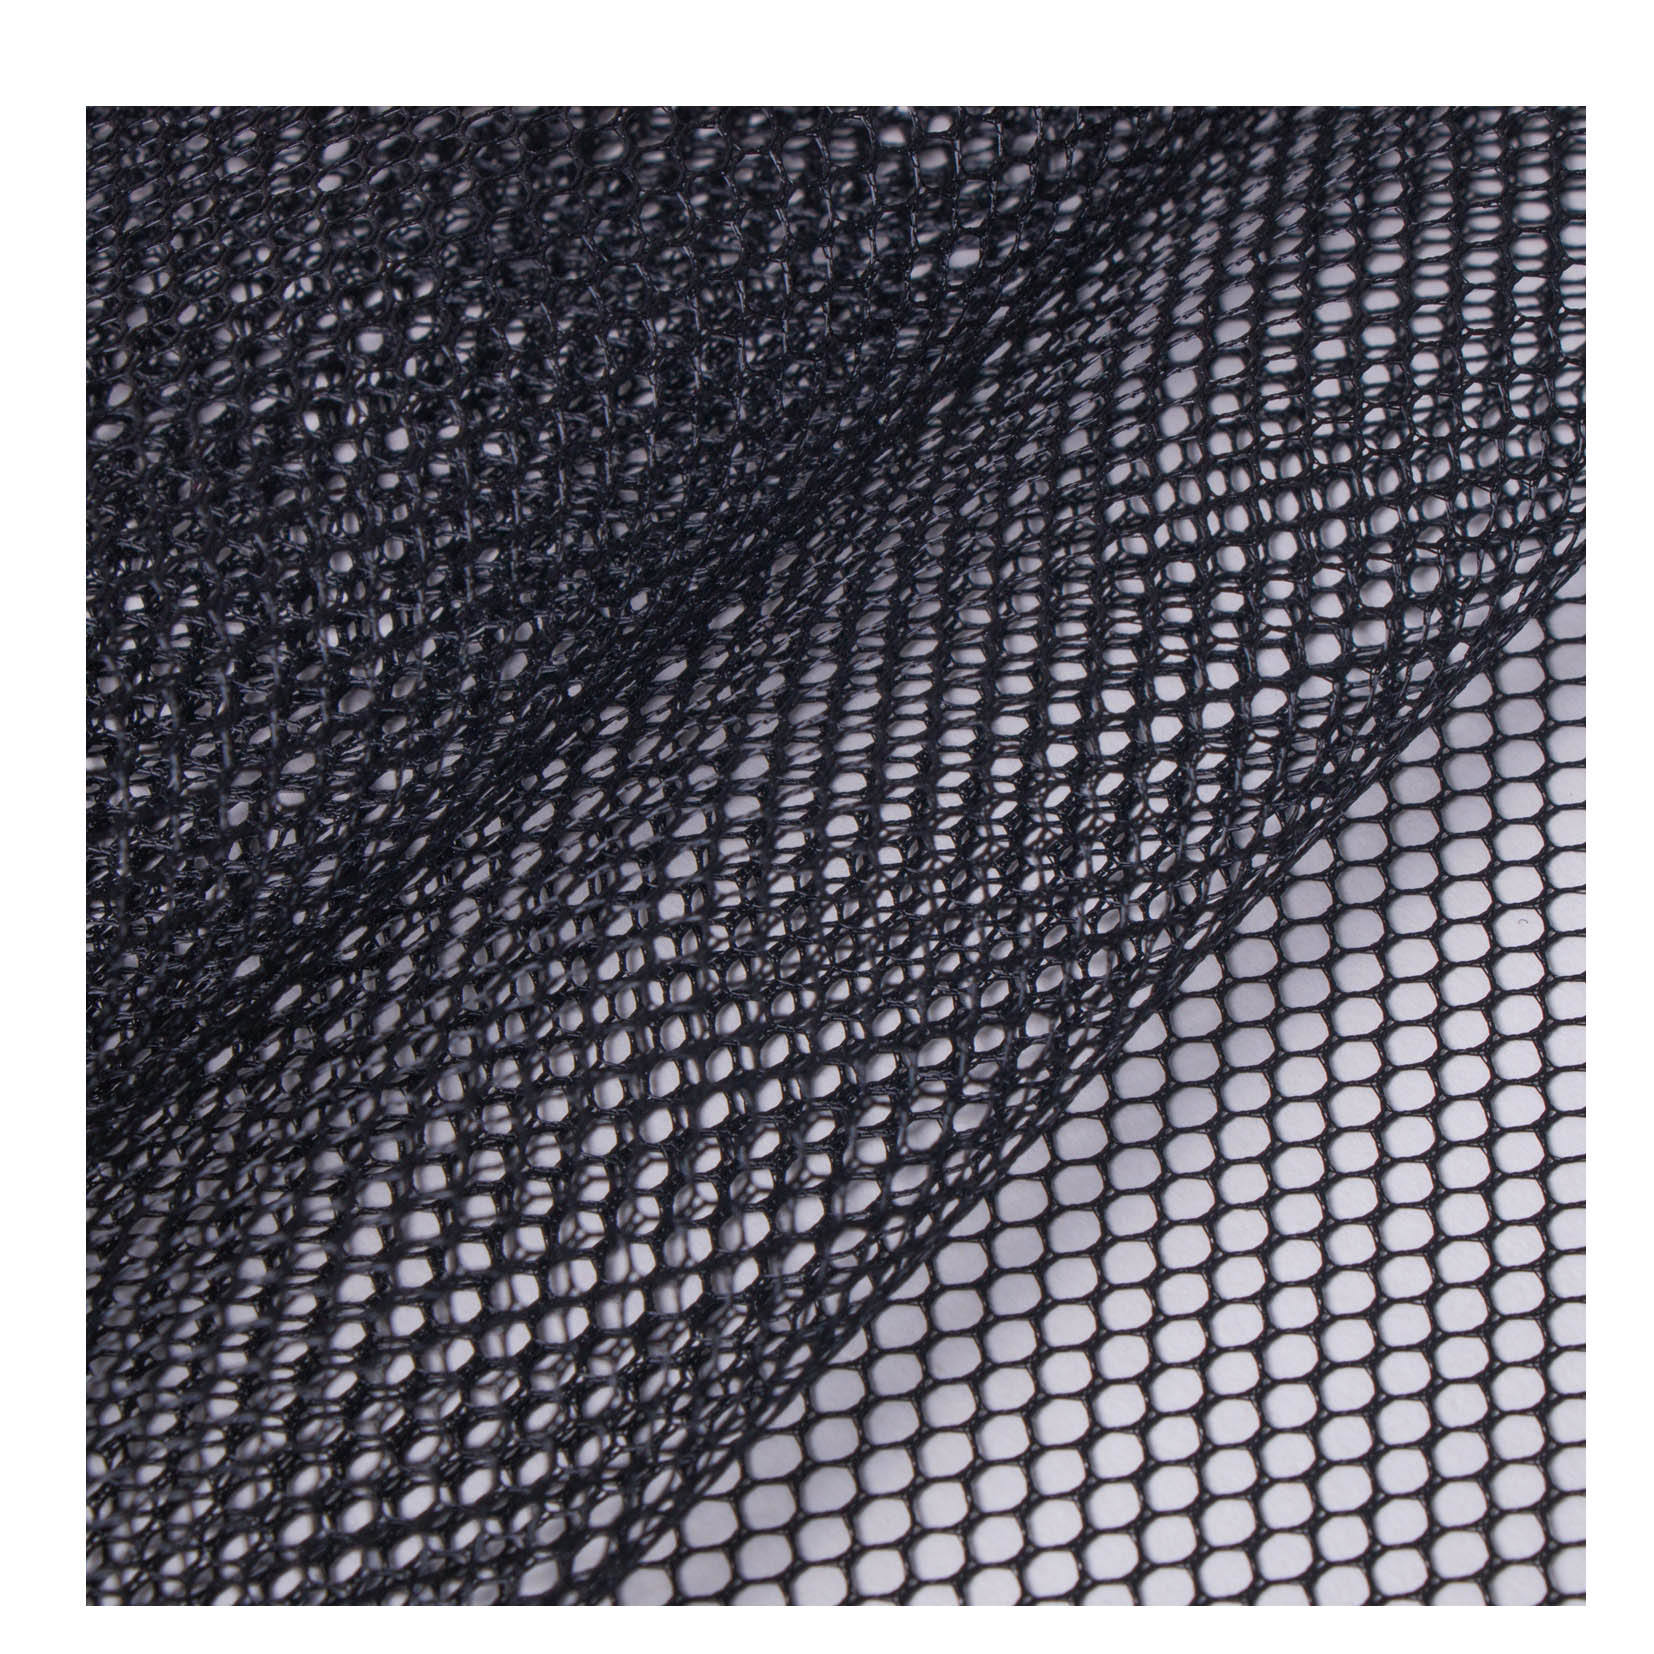 50D 100% Polyester Tricot Power Mesh Filet Chaussure Sport Étendre Fishscale <span class=keywords><strong>Tissu</strong></span> Pour Tente